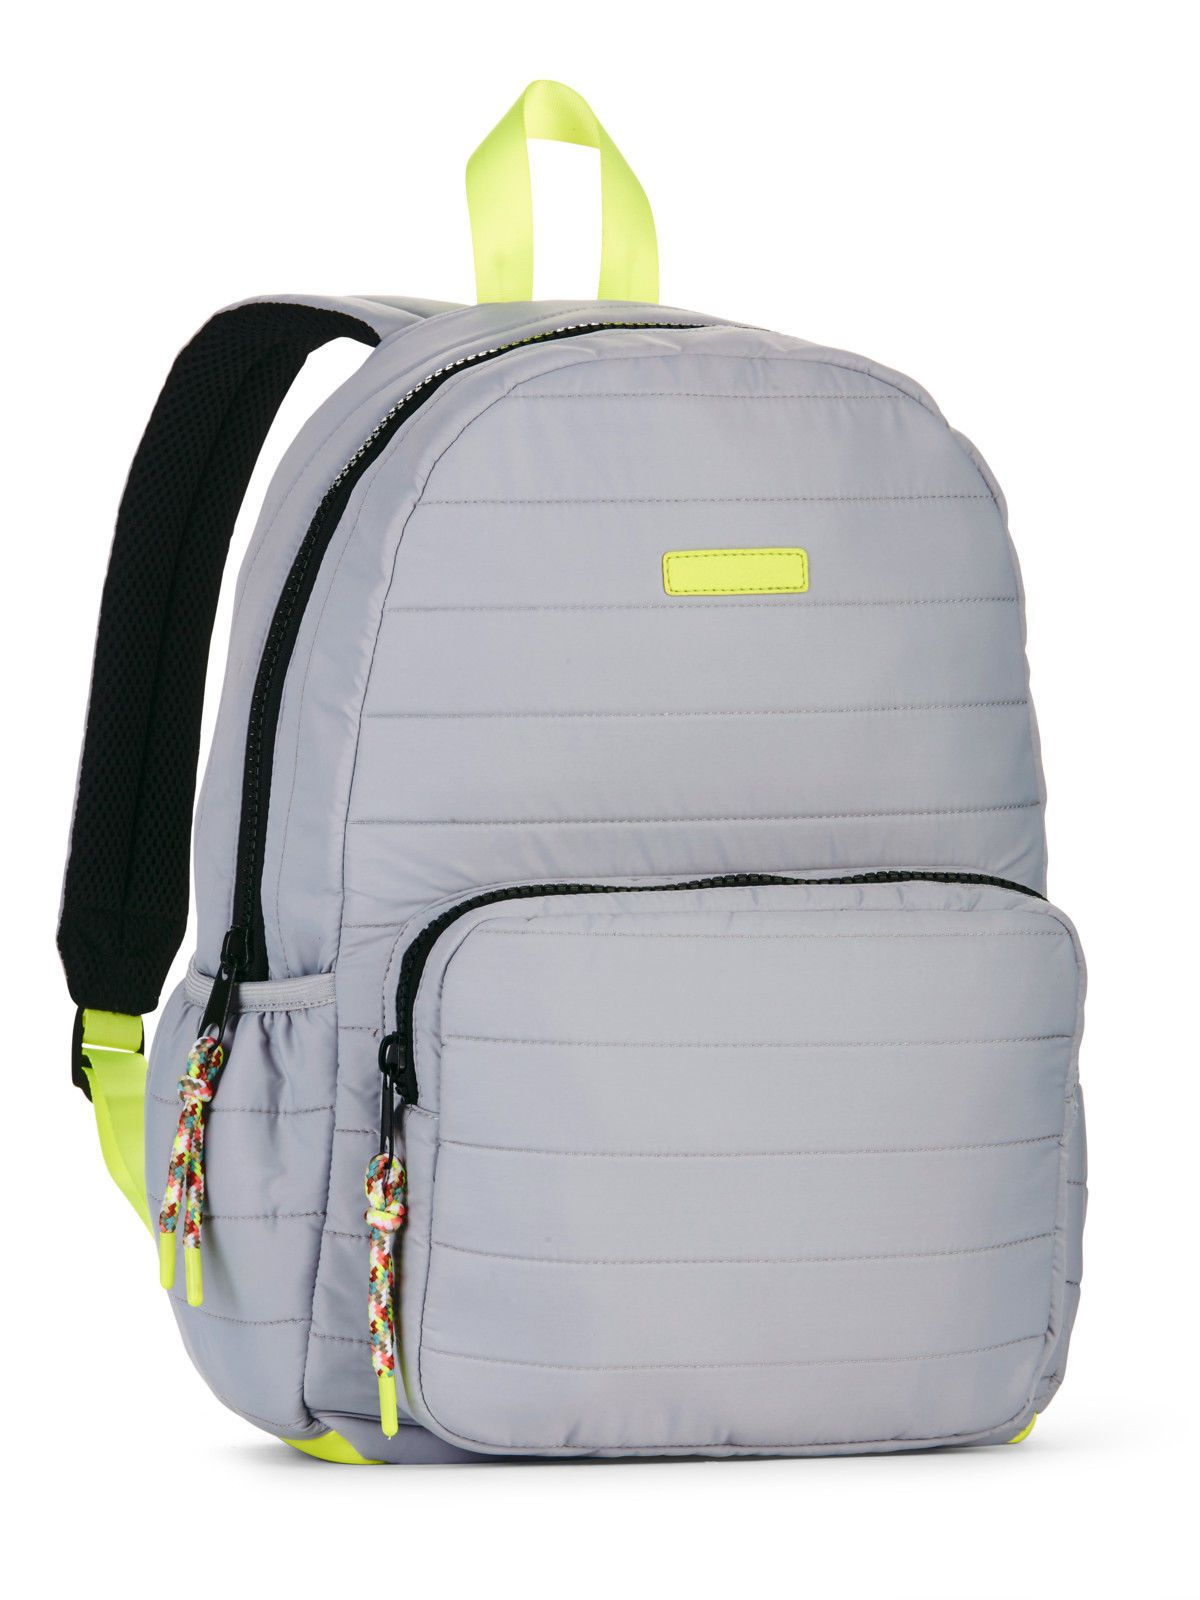 Cool backpack for boys girl laptop bag for teenage college